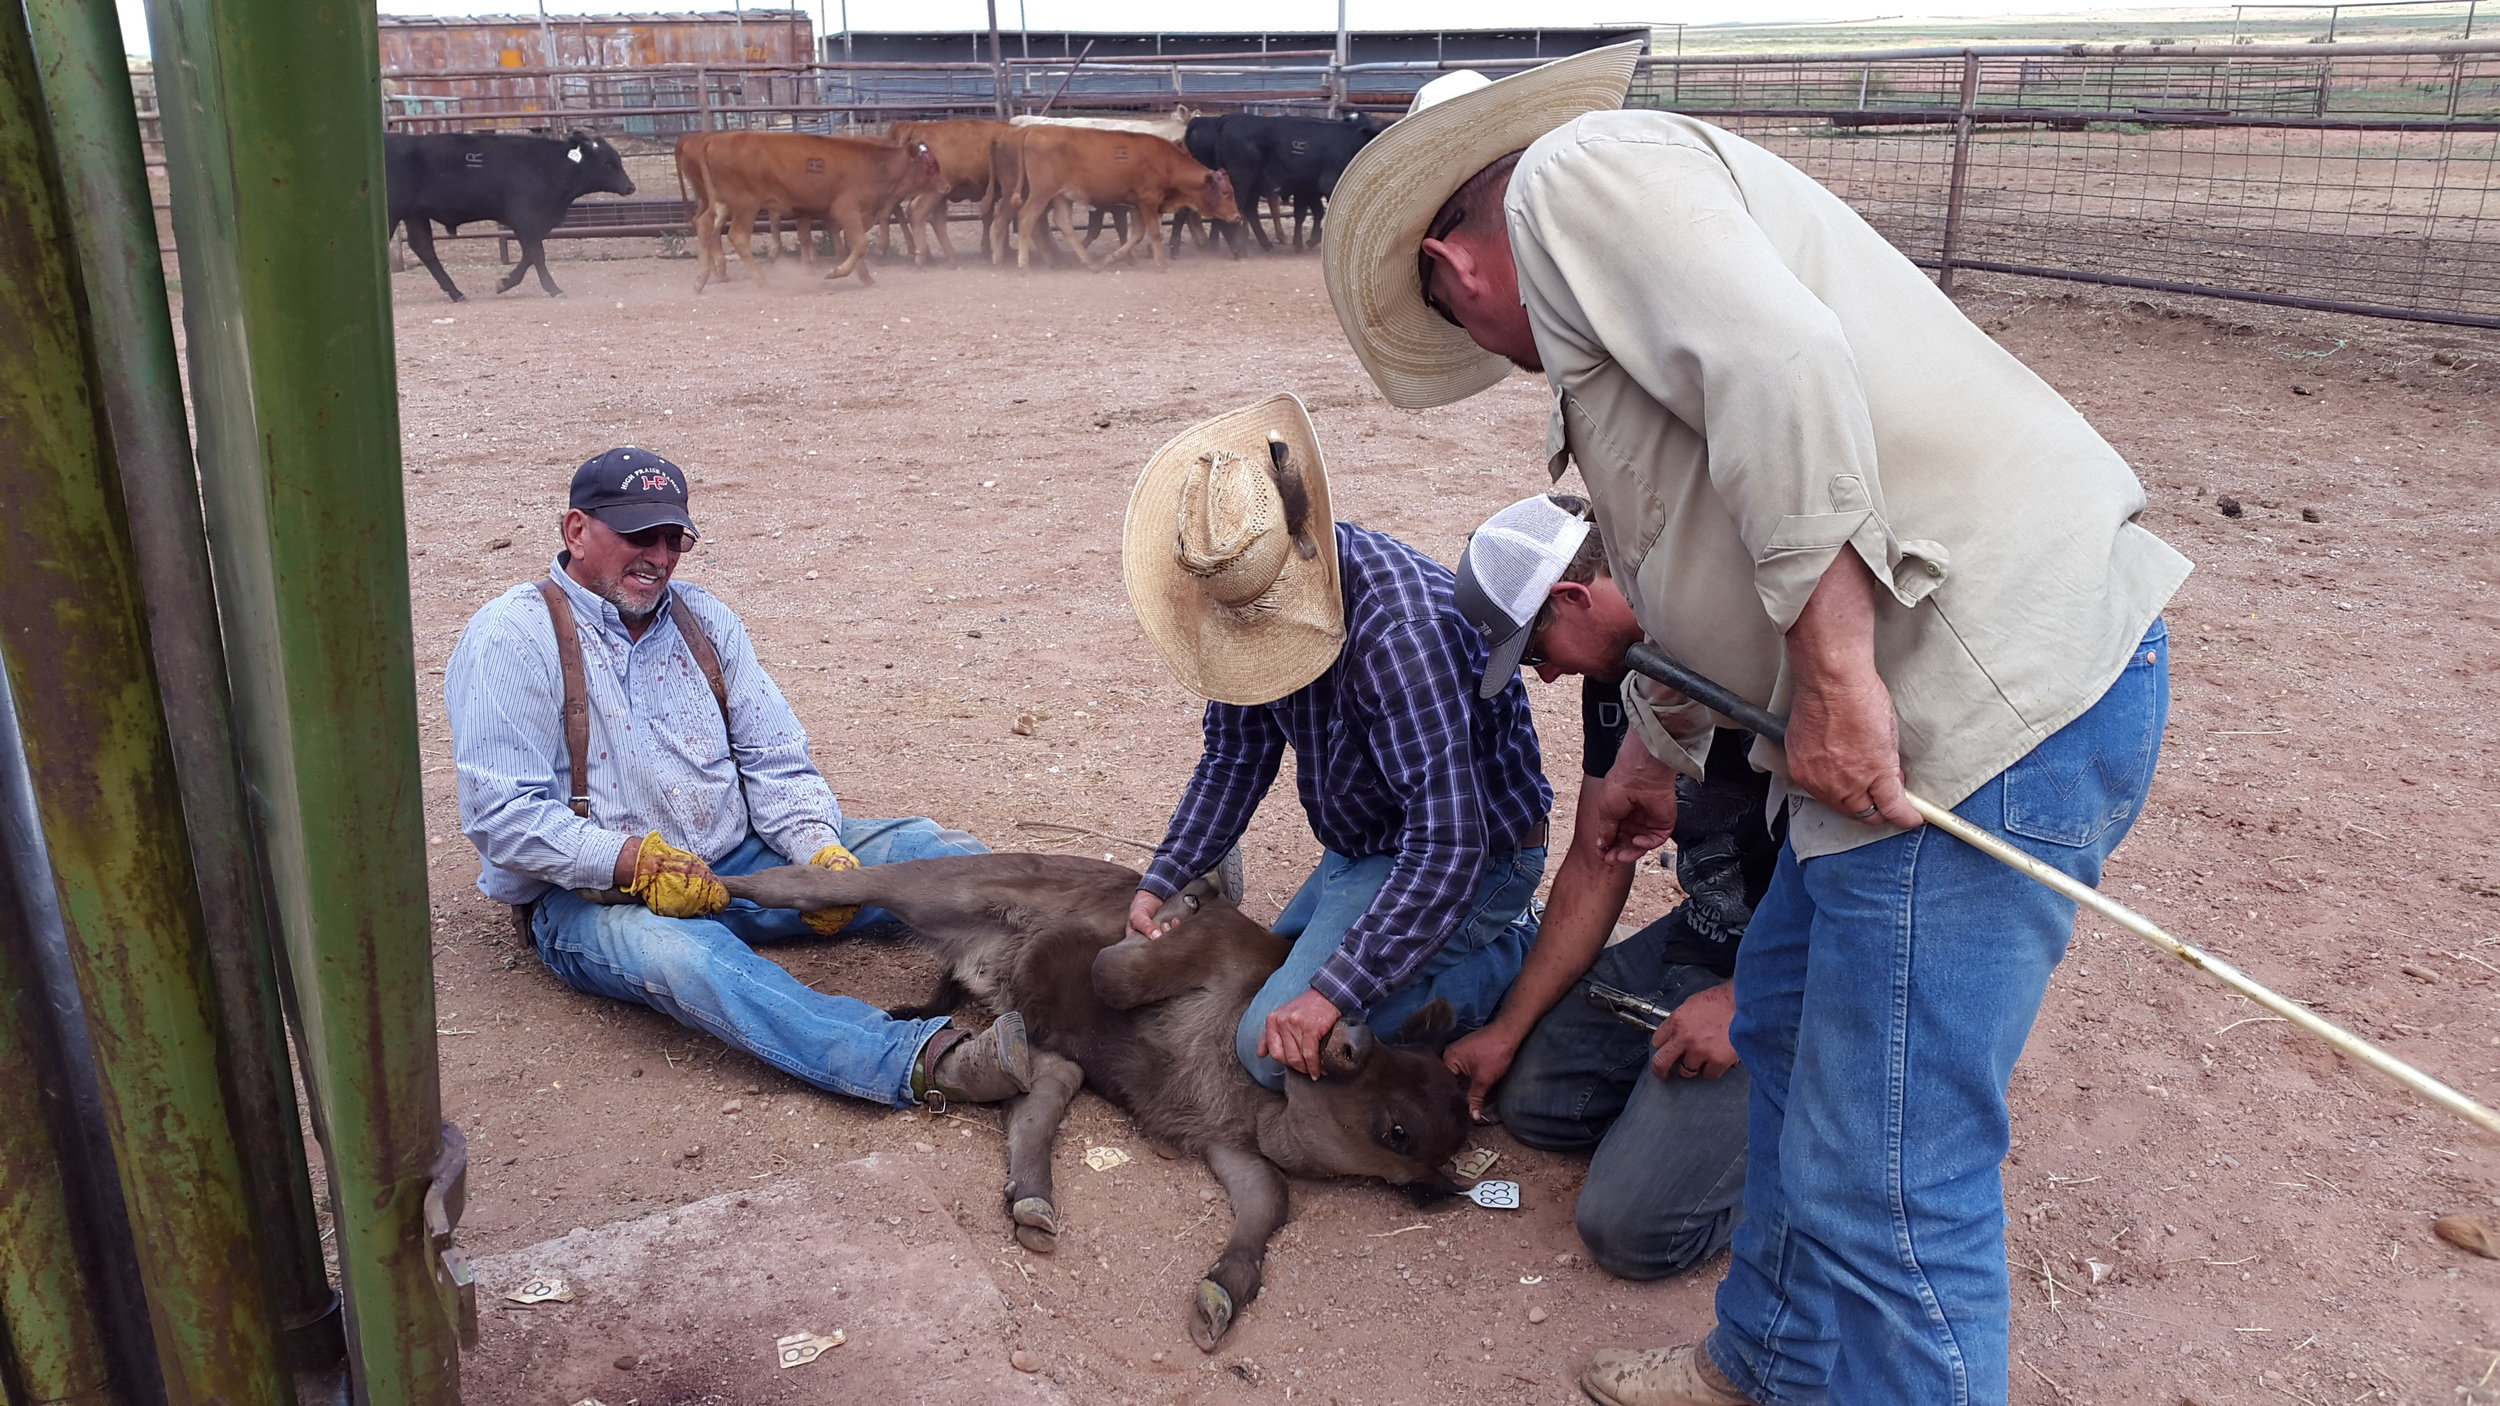 James (left) and Rob (second to left) are flanking a calf while Chance (second to right) and Joe (right) are checking the ear tag.  James (links) und Rob (Zweiter von links) flanken (sorry, wieder kein deutscher Begriff dafür) das Kalb, während Chance (Zweiter von rechts) und Joe (rechts) die Ohrmarke prüfen.